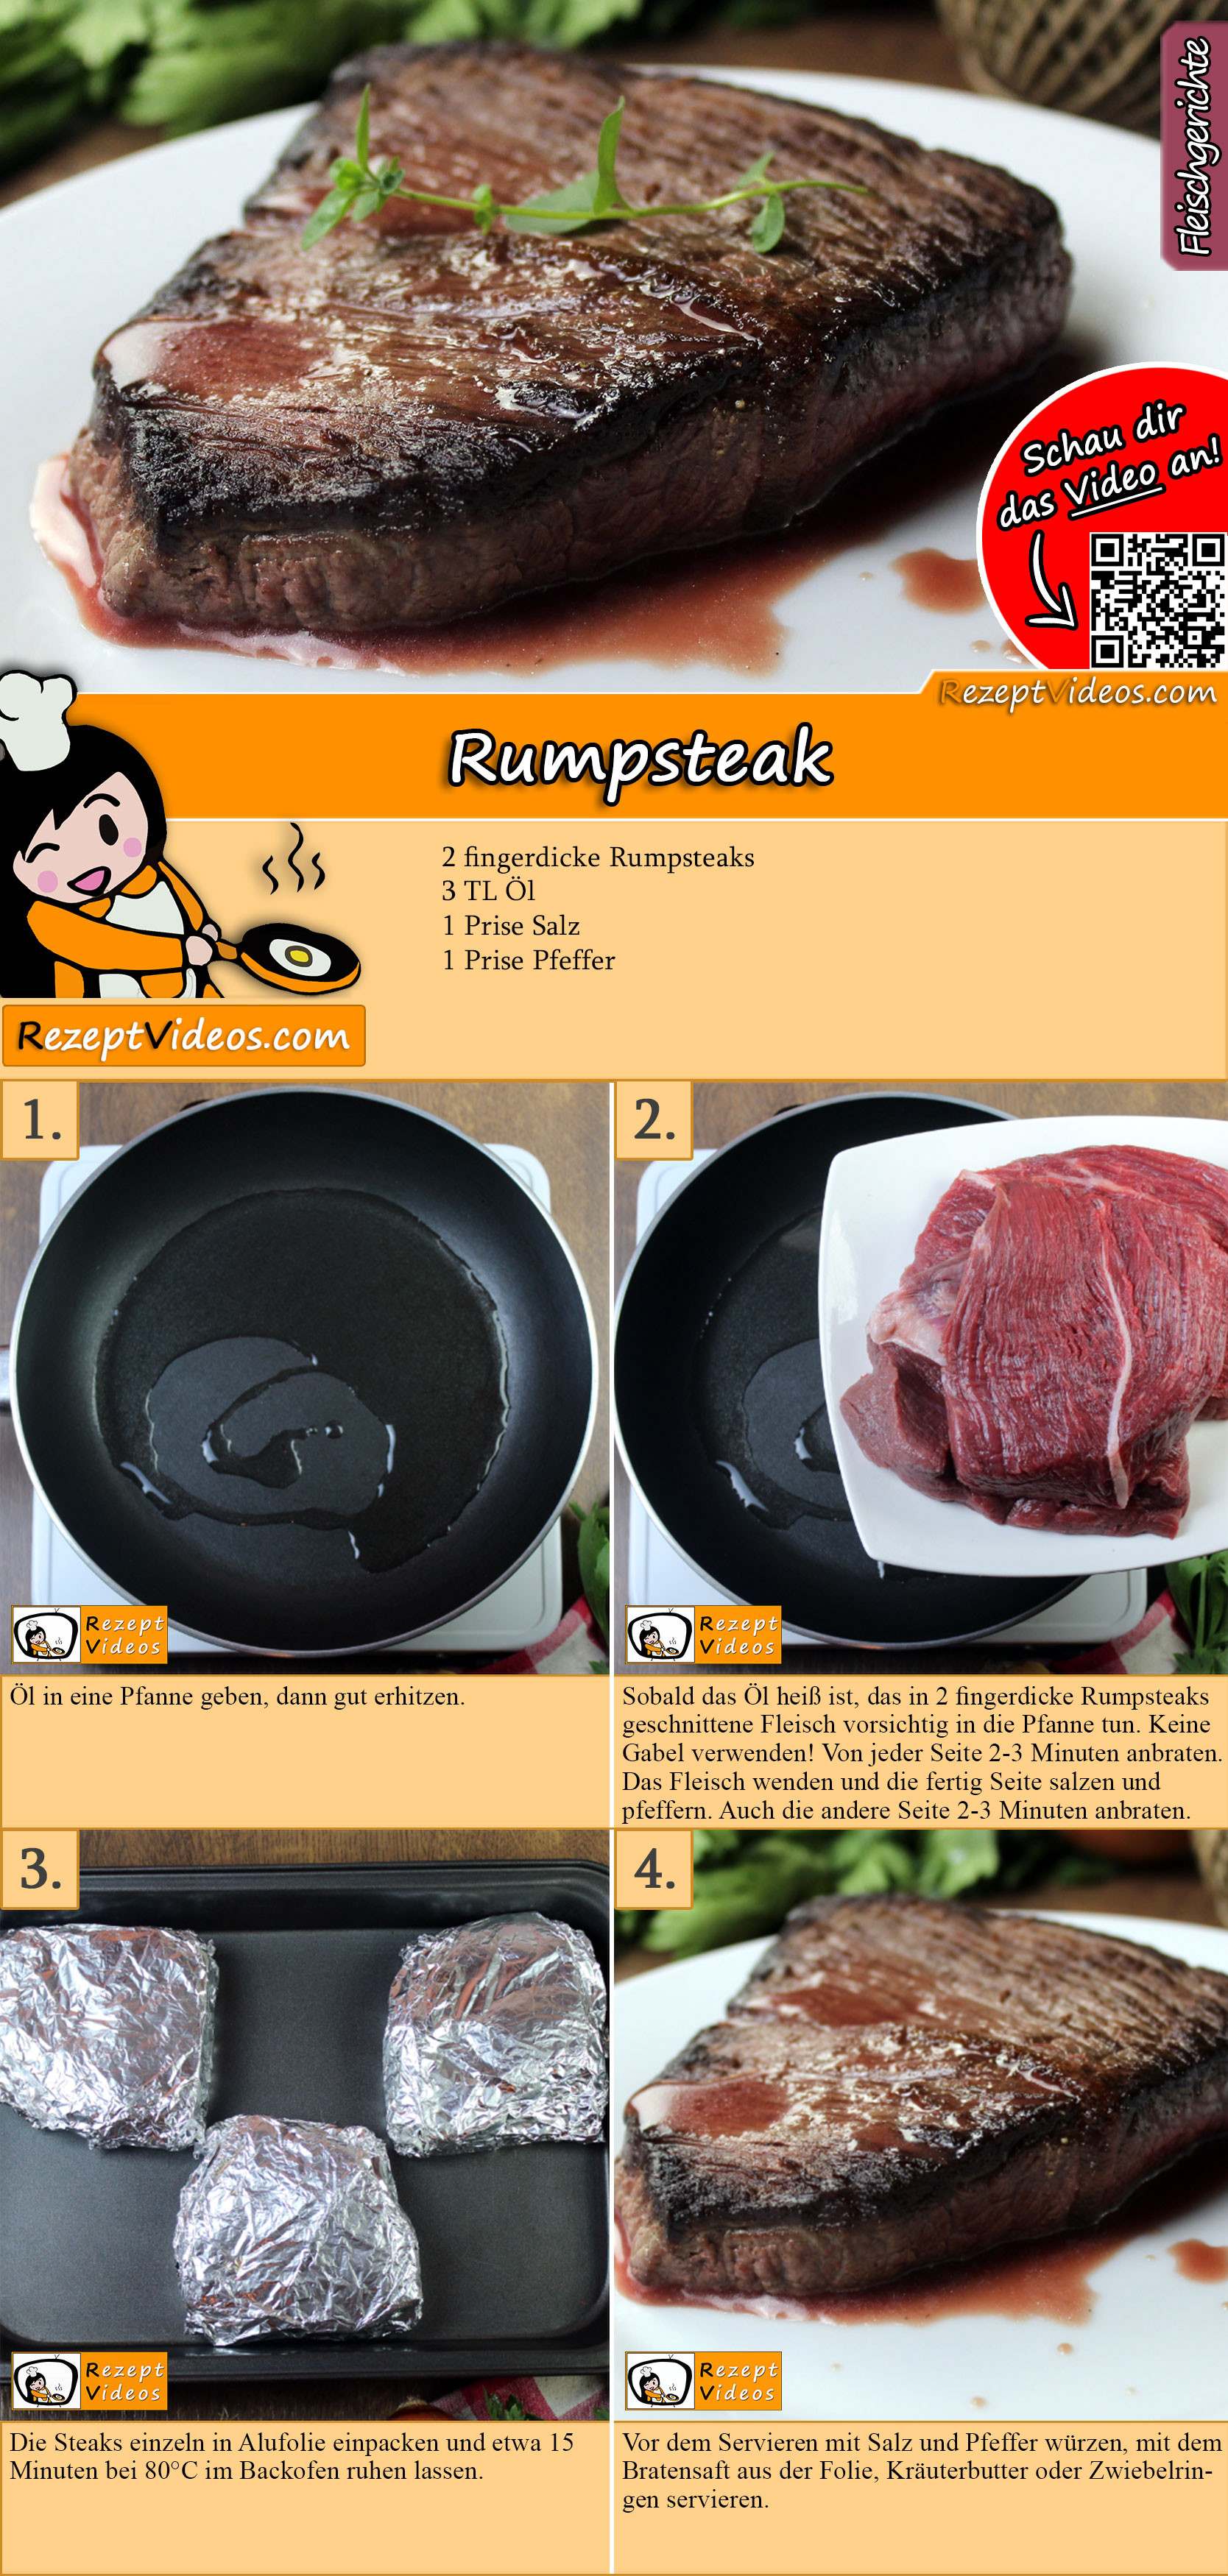 Rumpsteak Rezept mit Video